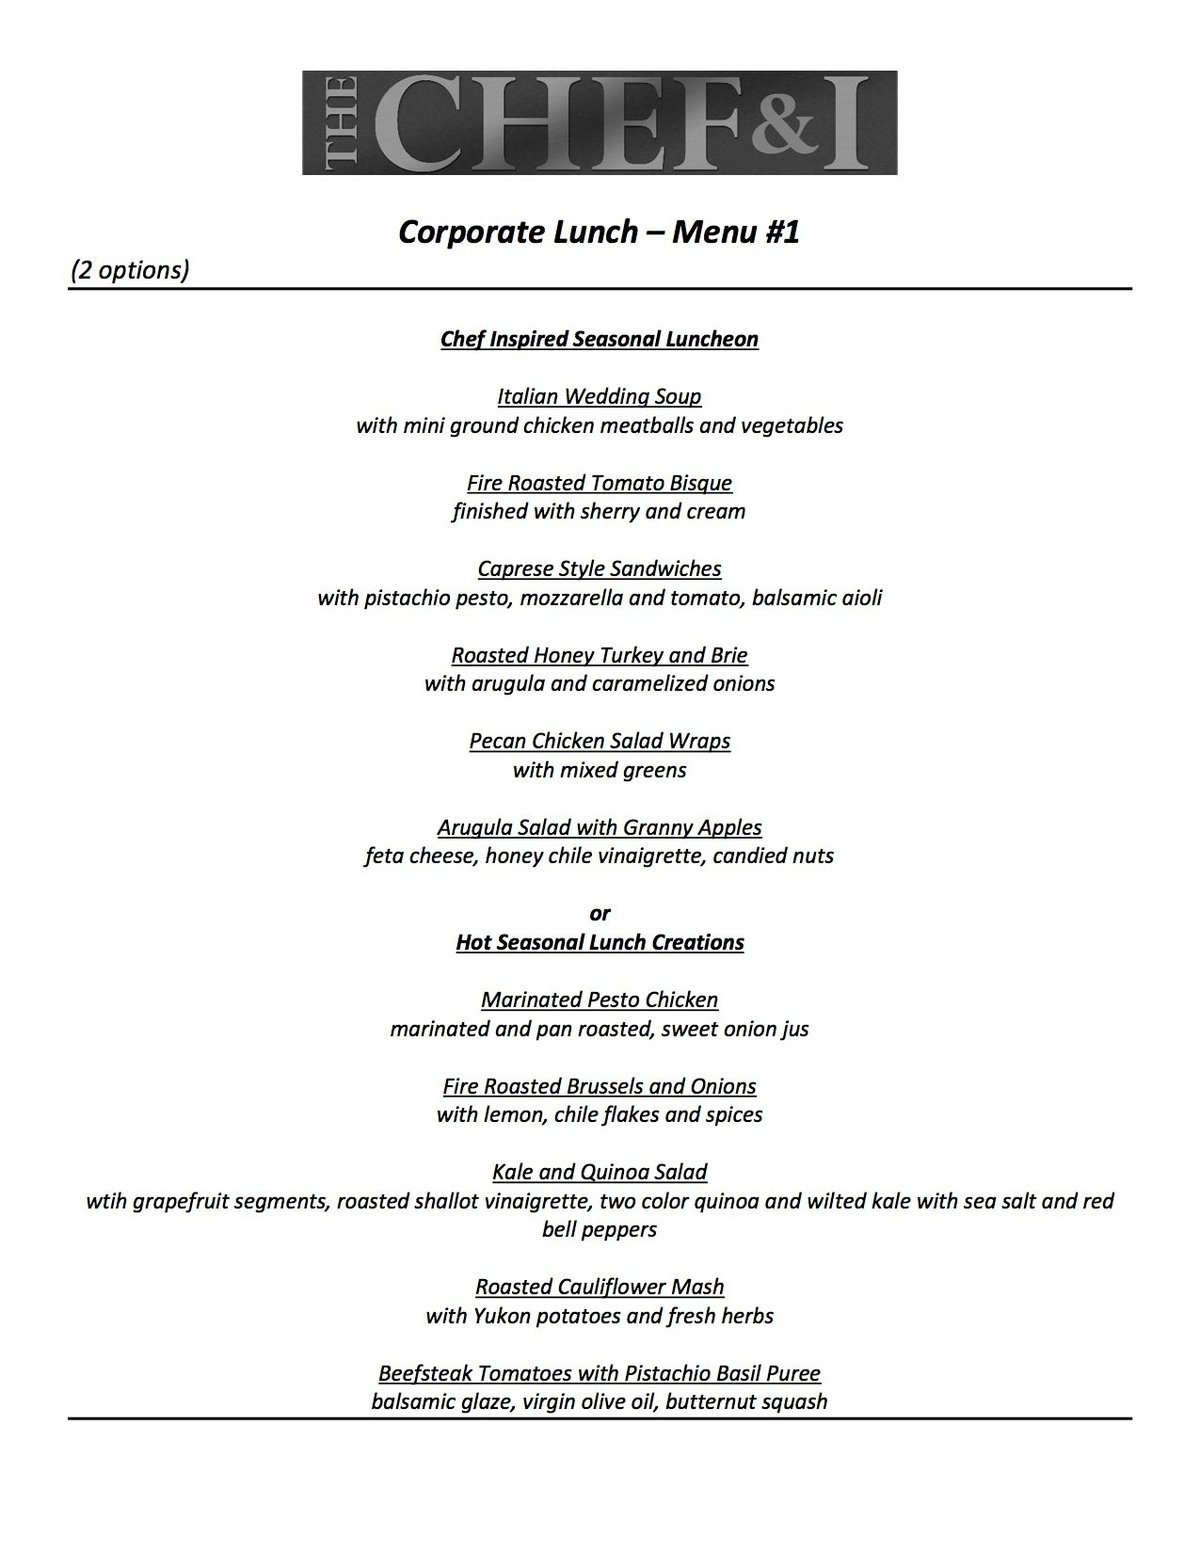 Corporate Lunch Menu 1